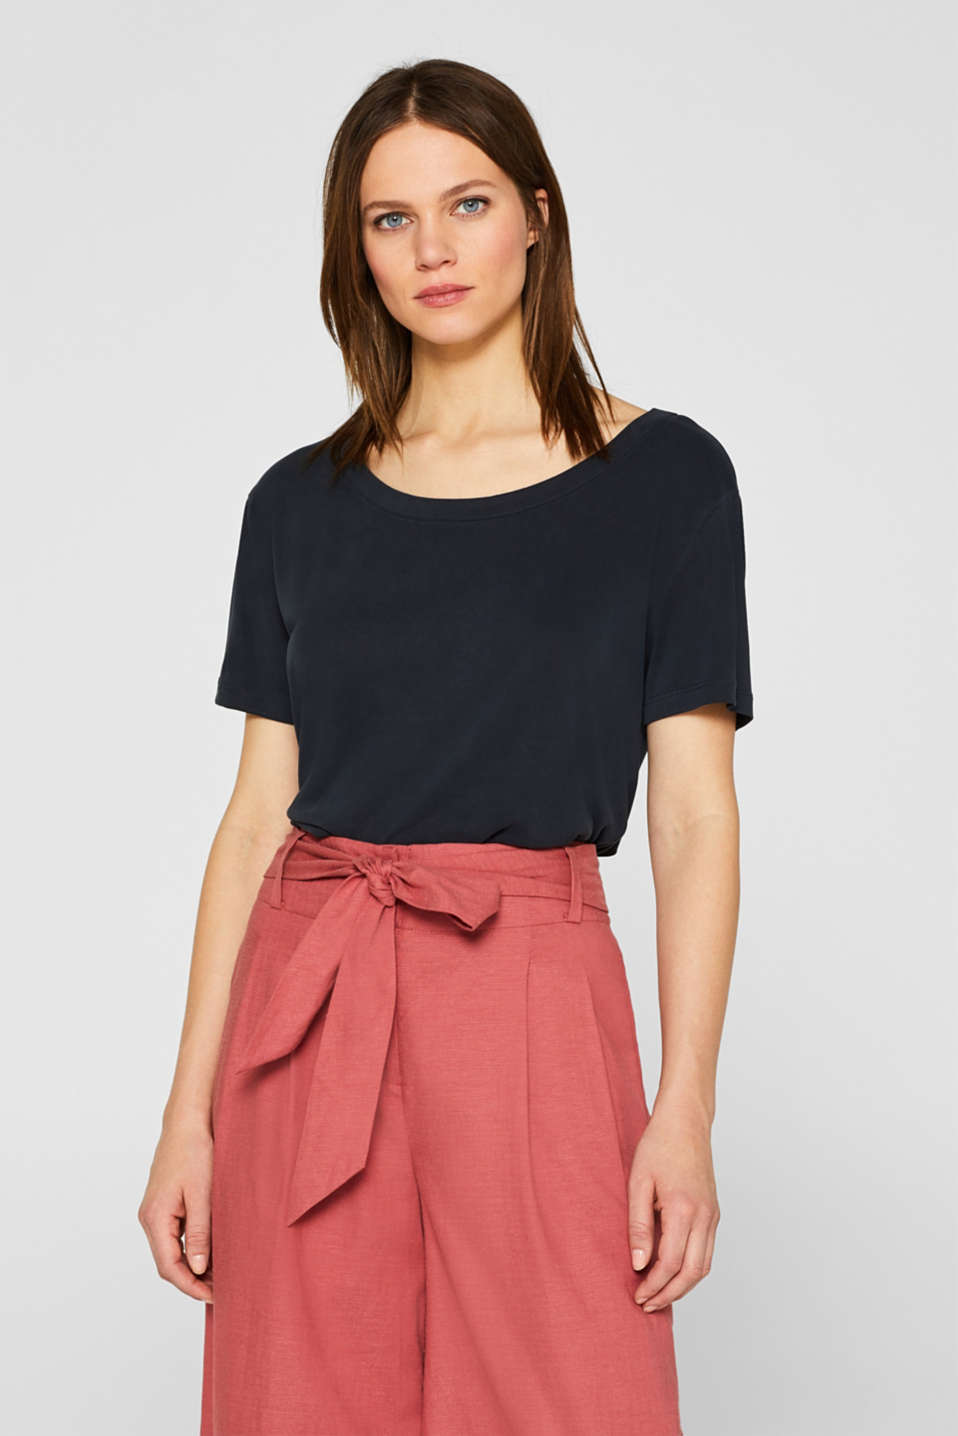 Esprit - Top with a cut-out at the back and draped effect